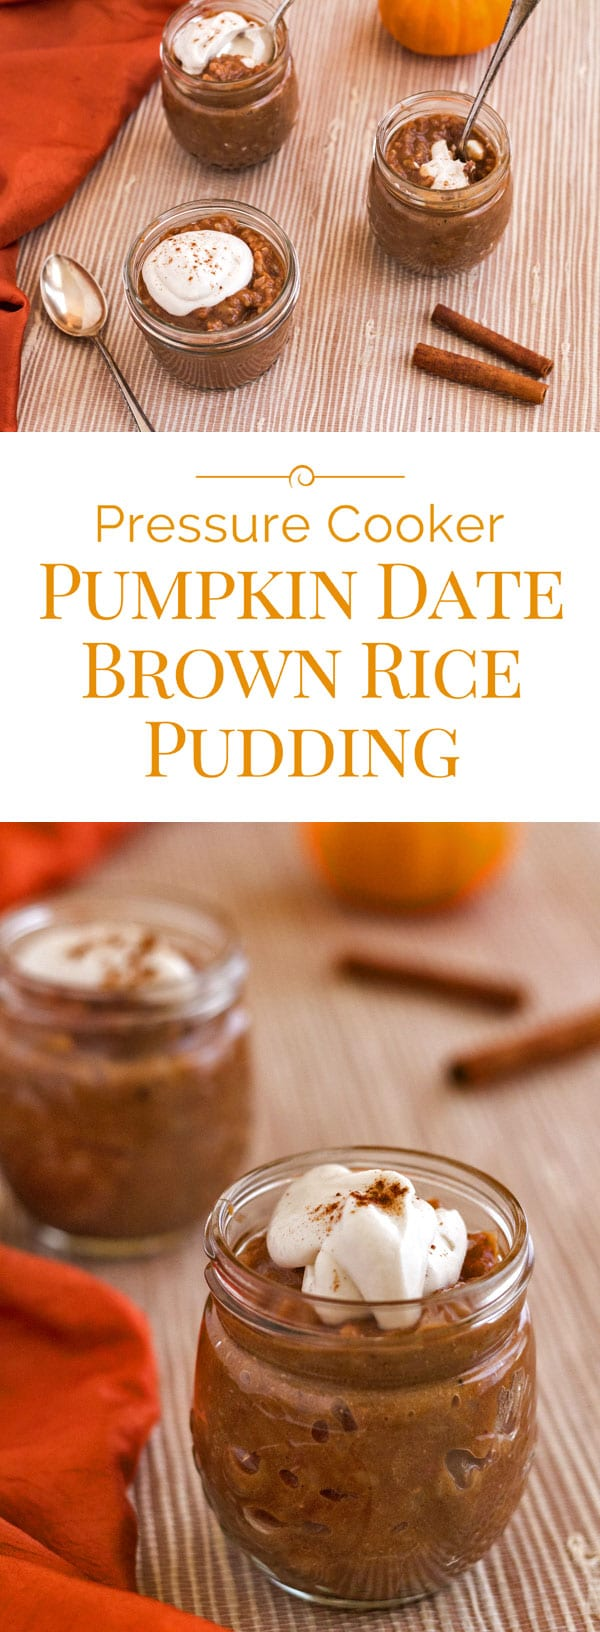 pumpkin date brown rice pudding photo collage